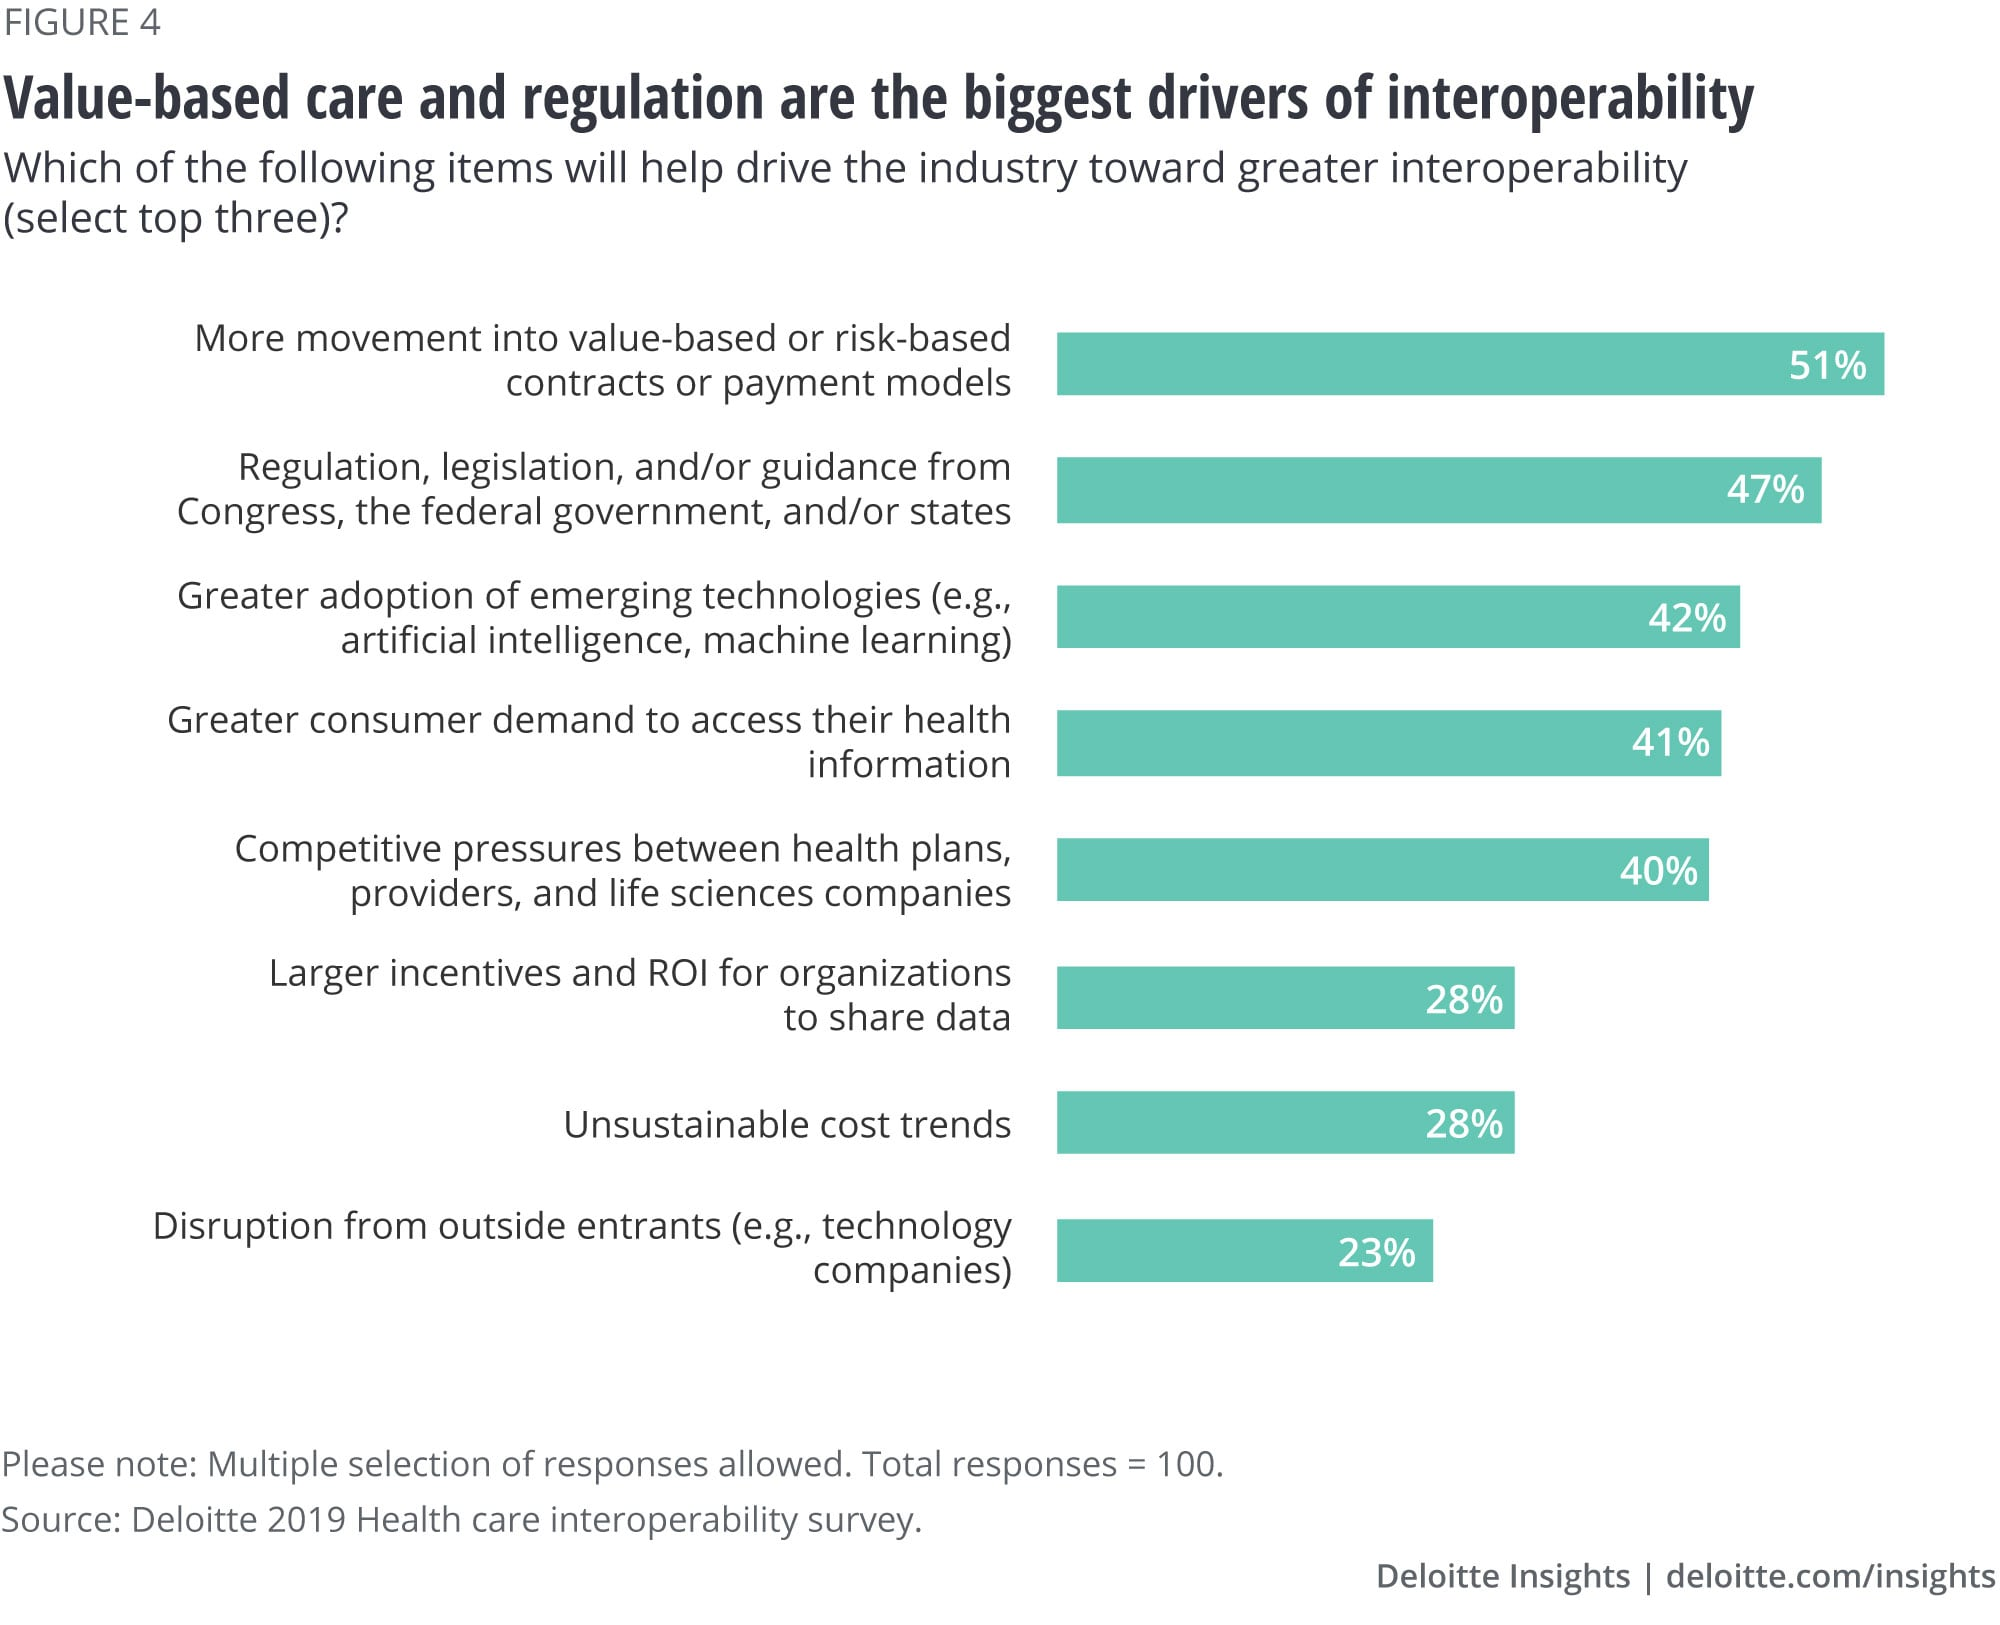 Largest drivers of greater industry interoperability are value-based care and regulation